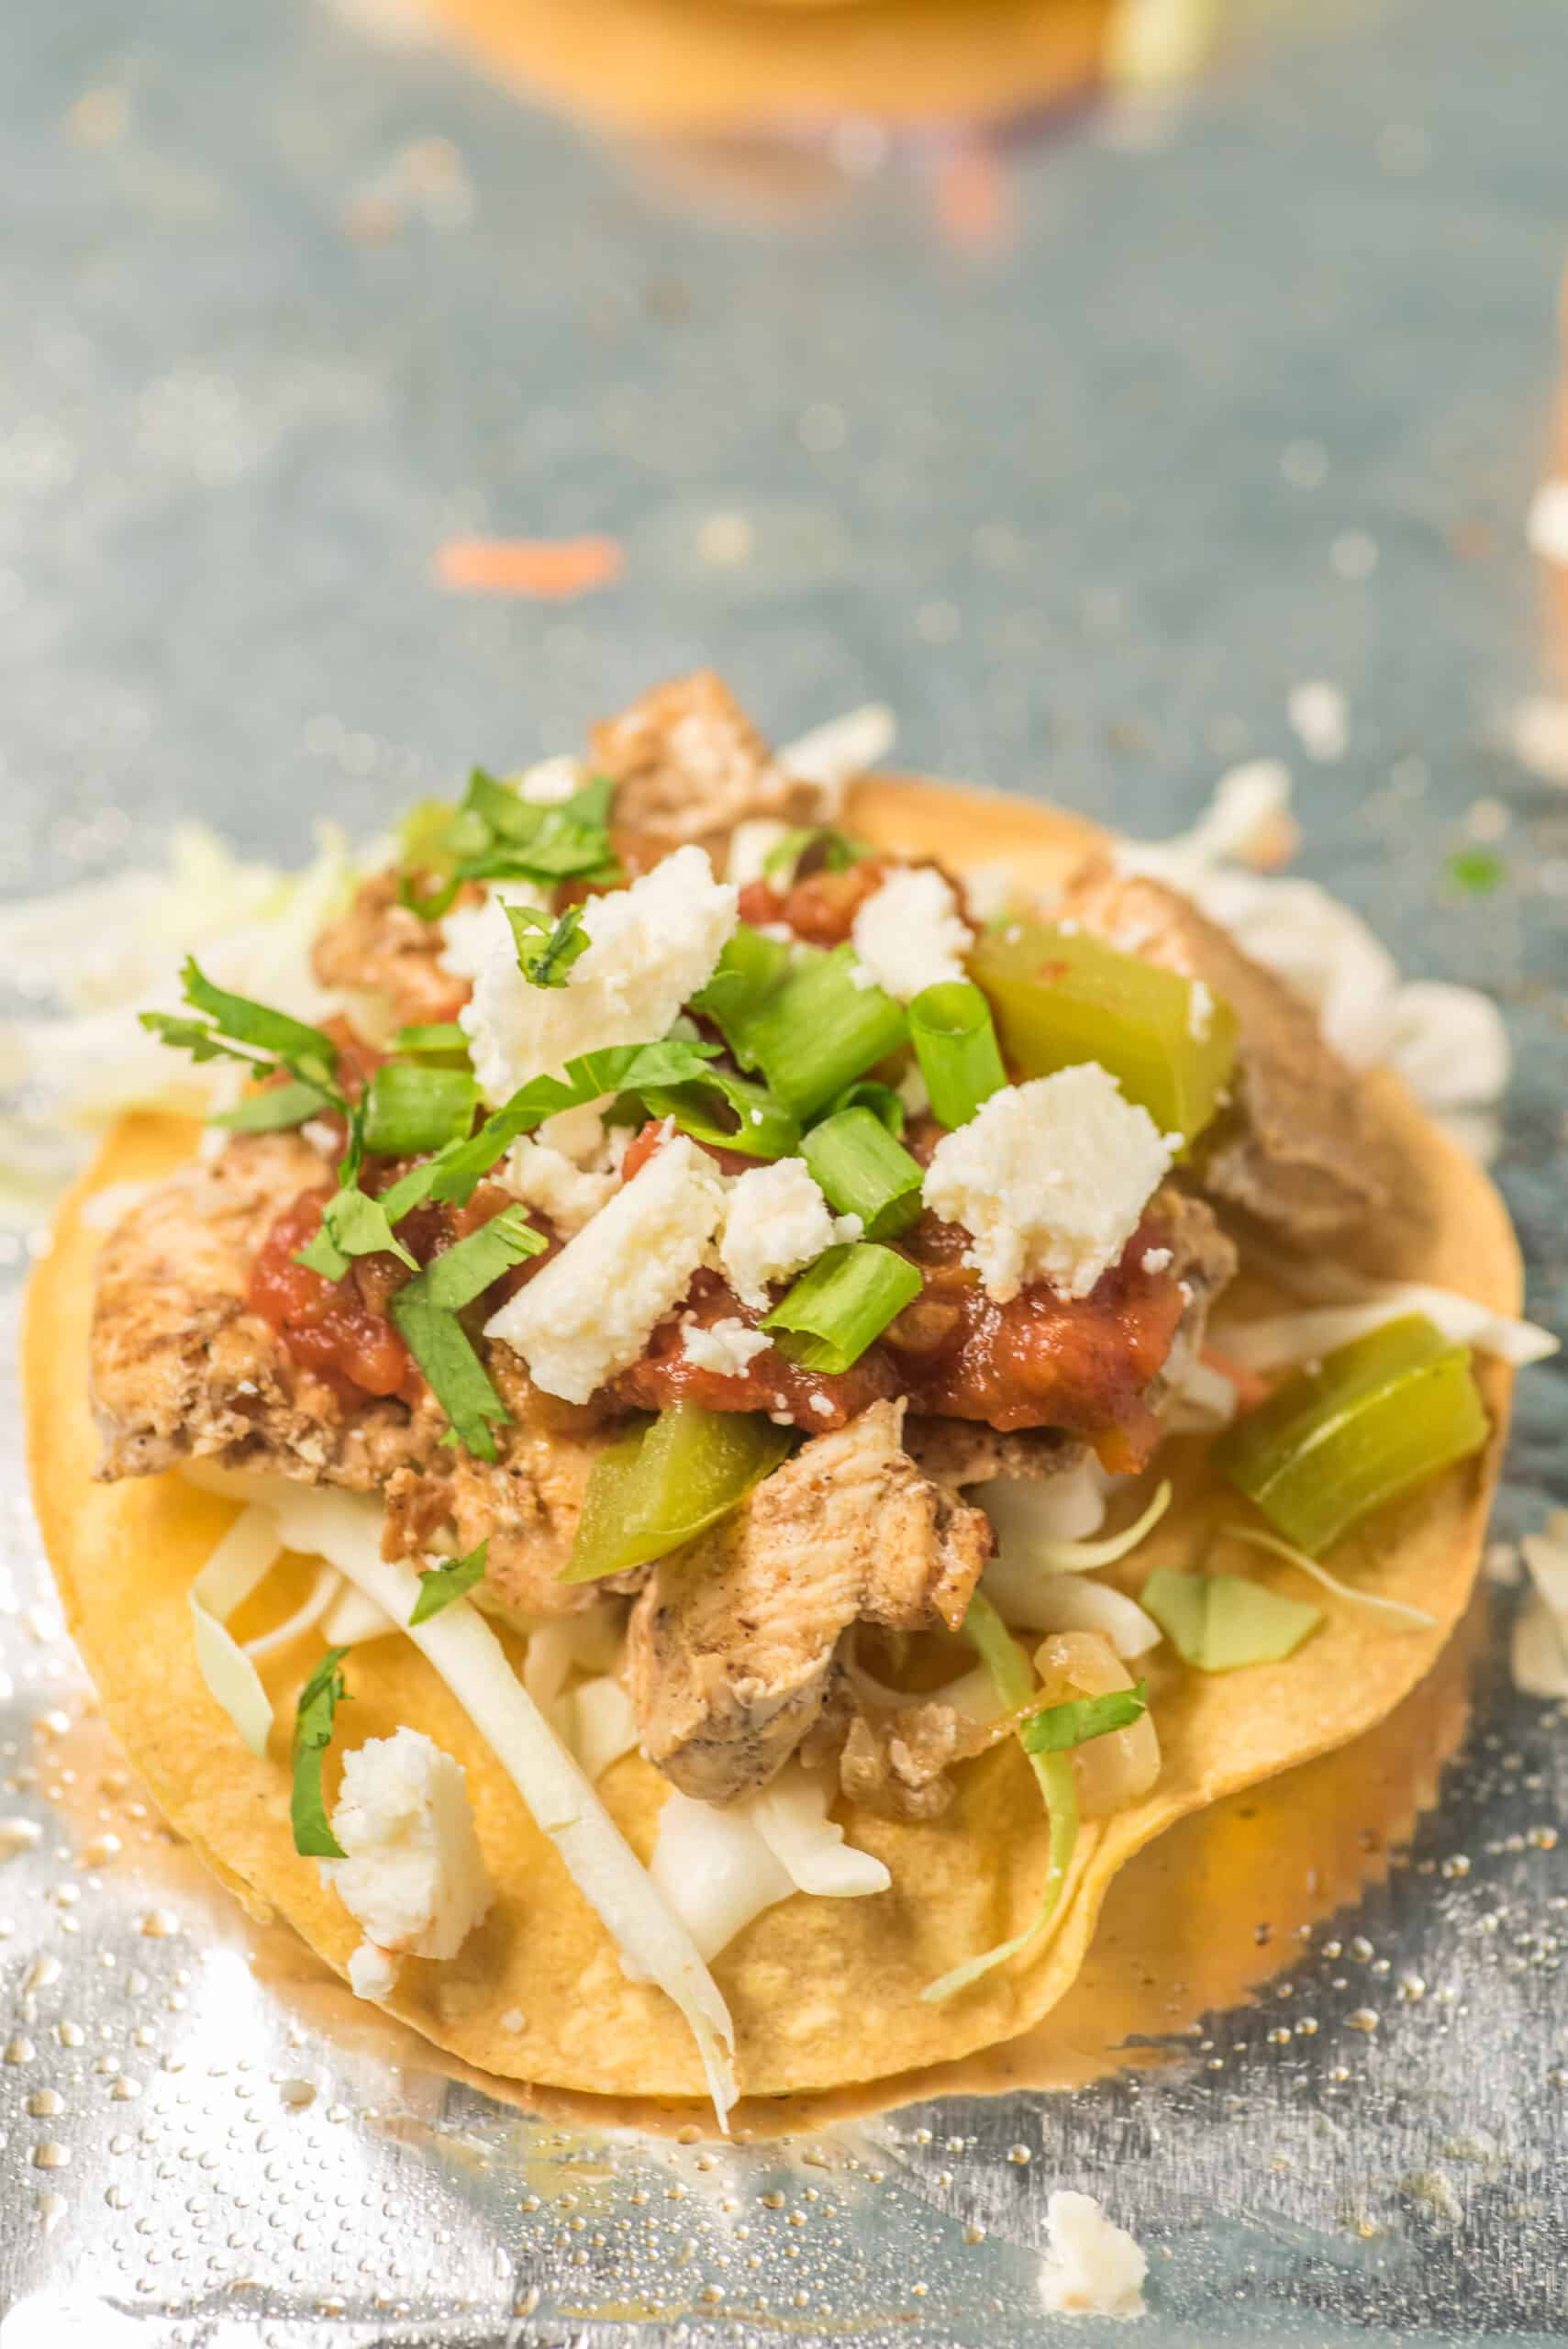 Chicken Tostada with all the fixings on a foil lined baking sheet.